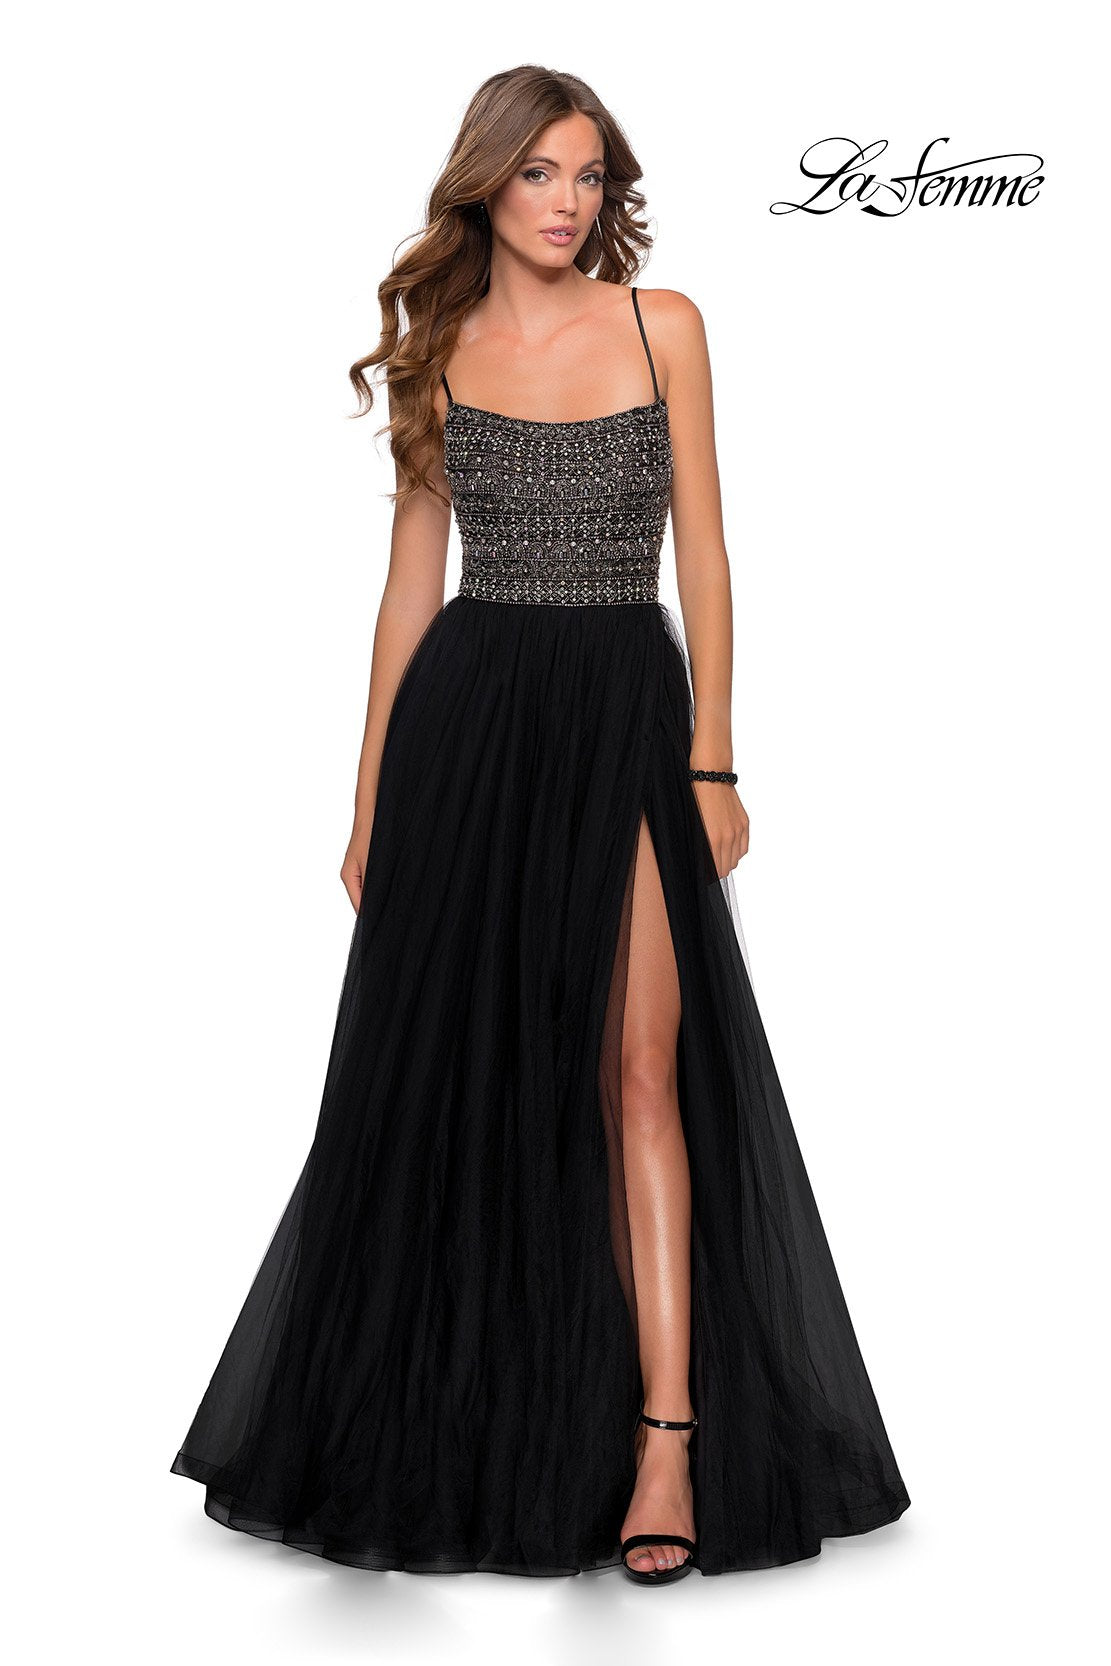 La Femme 28535 prom dress images.  La Femme 28535 is available in these colors: Black, Mauve, Silver.